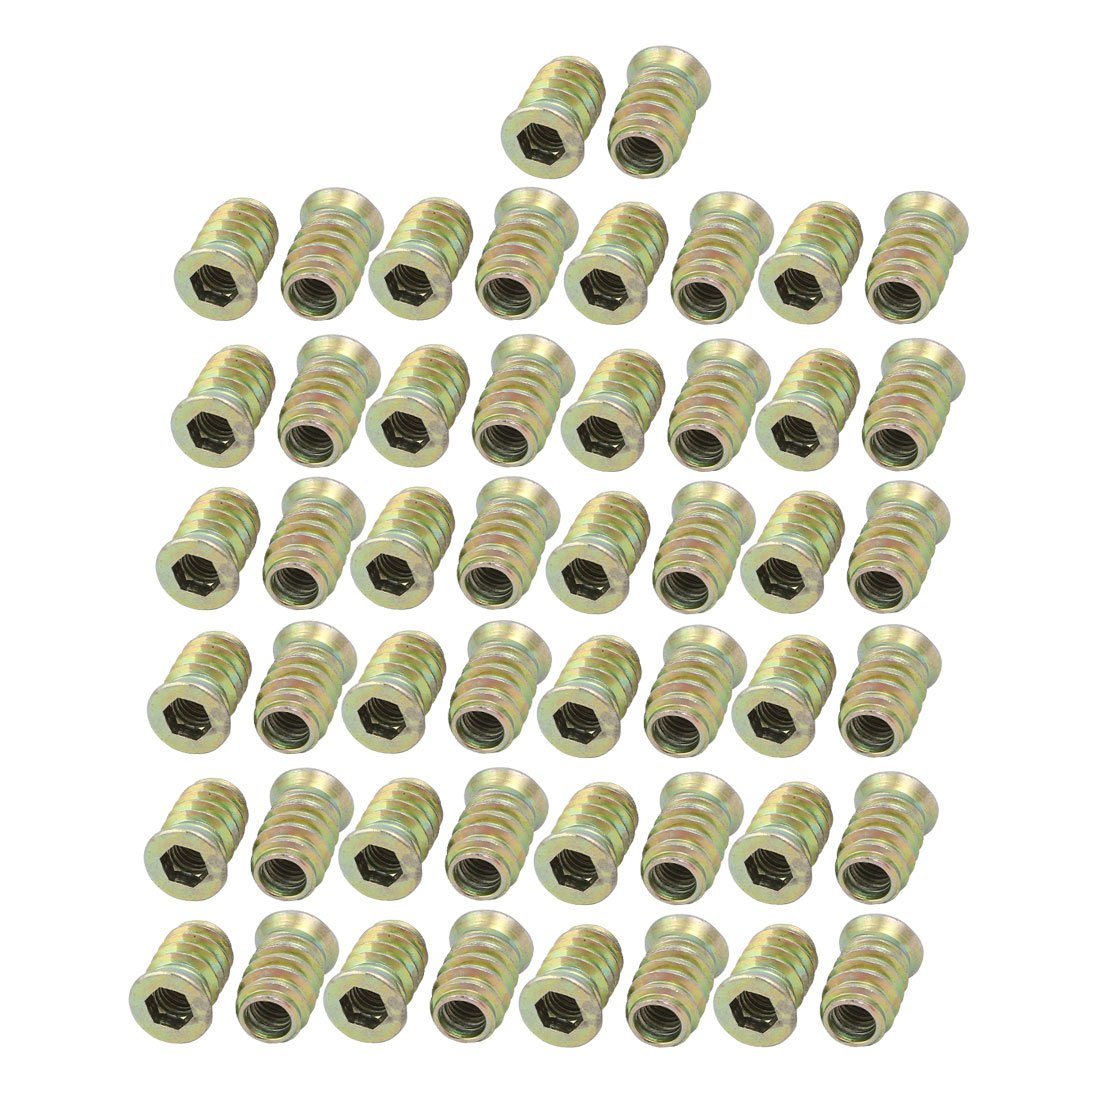 uxcell M6 Female to M10 Male Thread Furniture Insert Interface Hex Socket E-Nut 50pcs